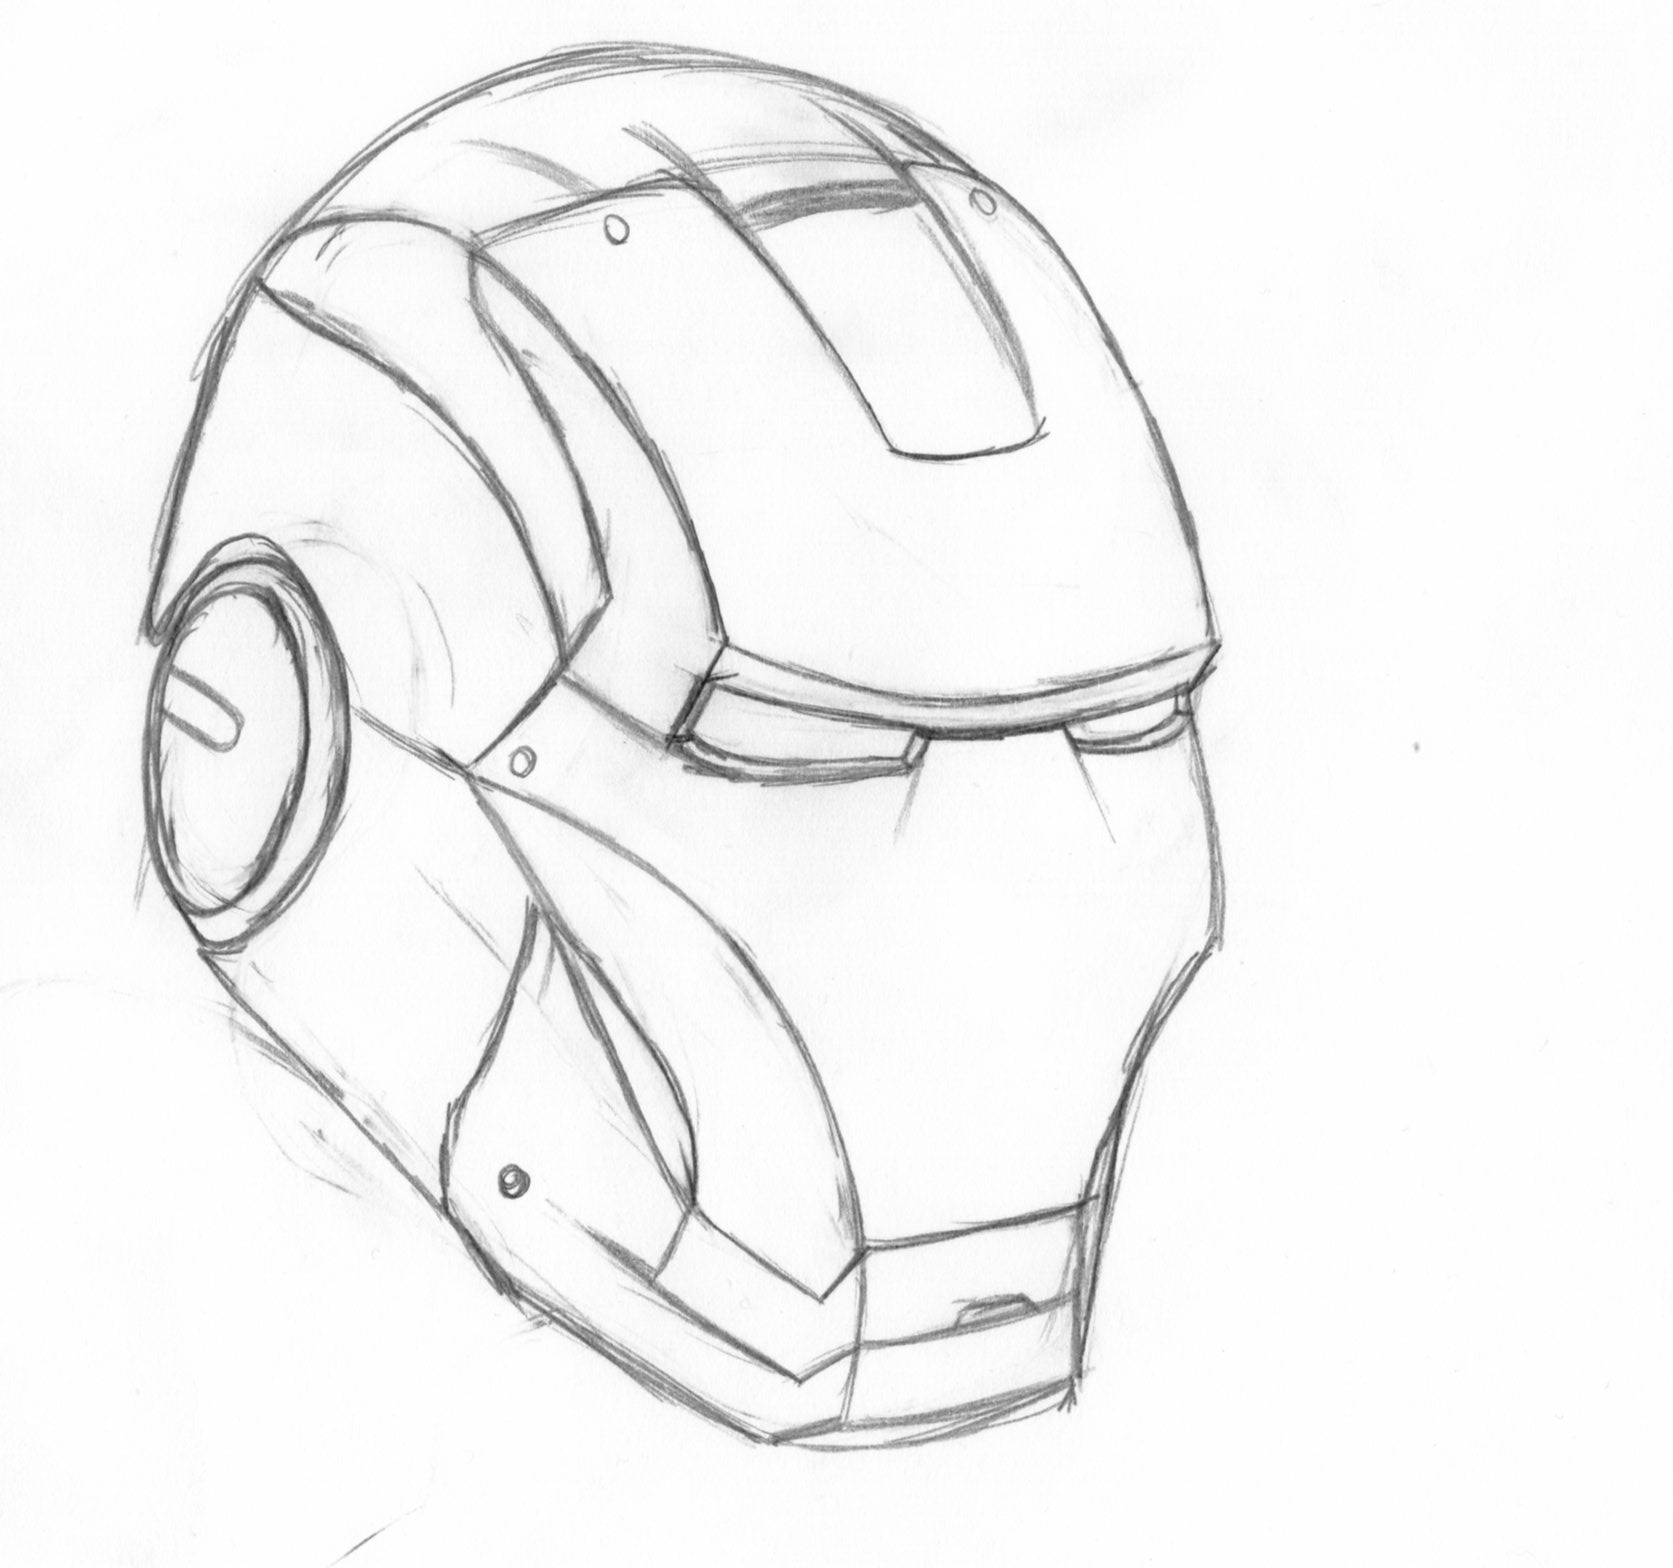 Iron man 39 s mask wip by deirgderc on deviantart for Iron man face mask template